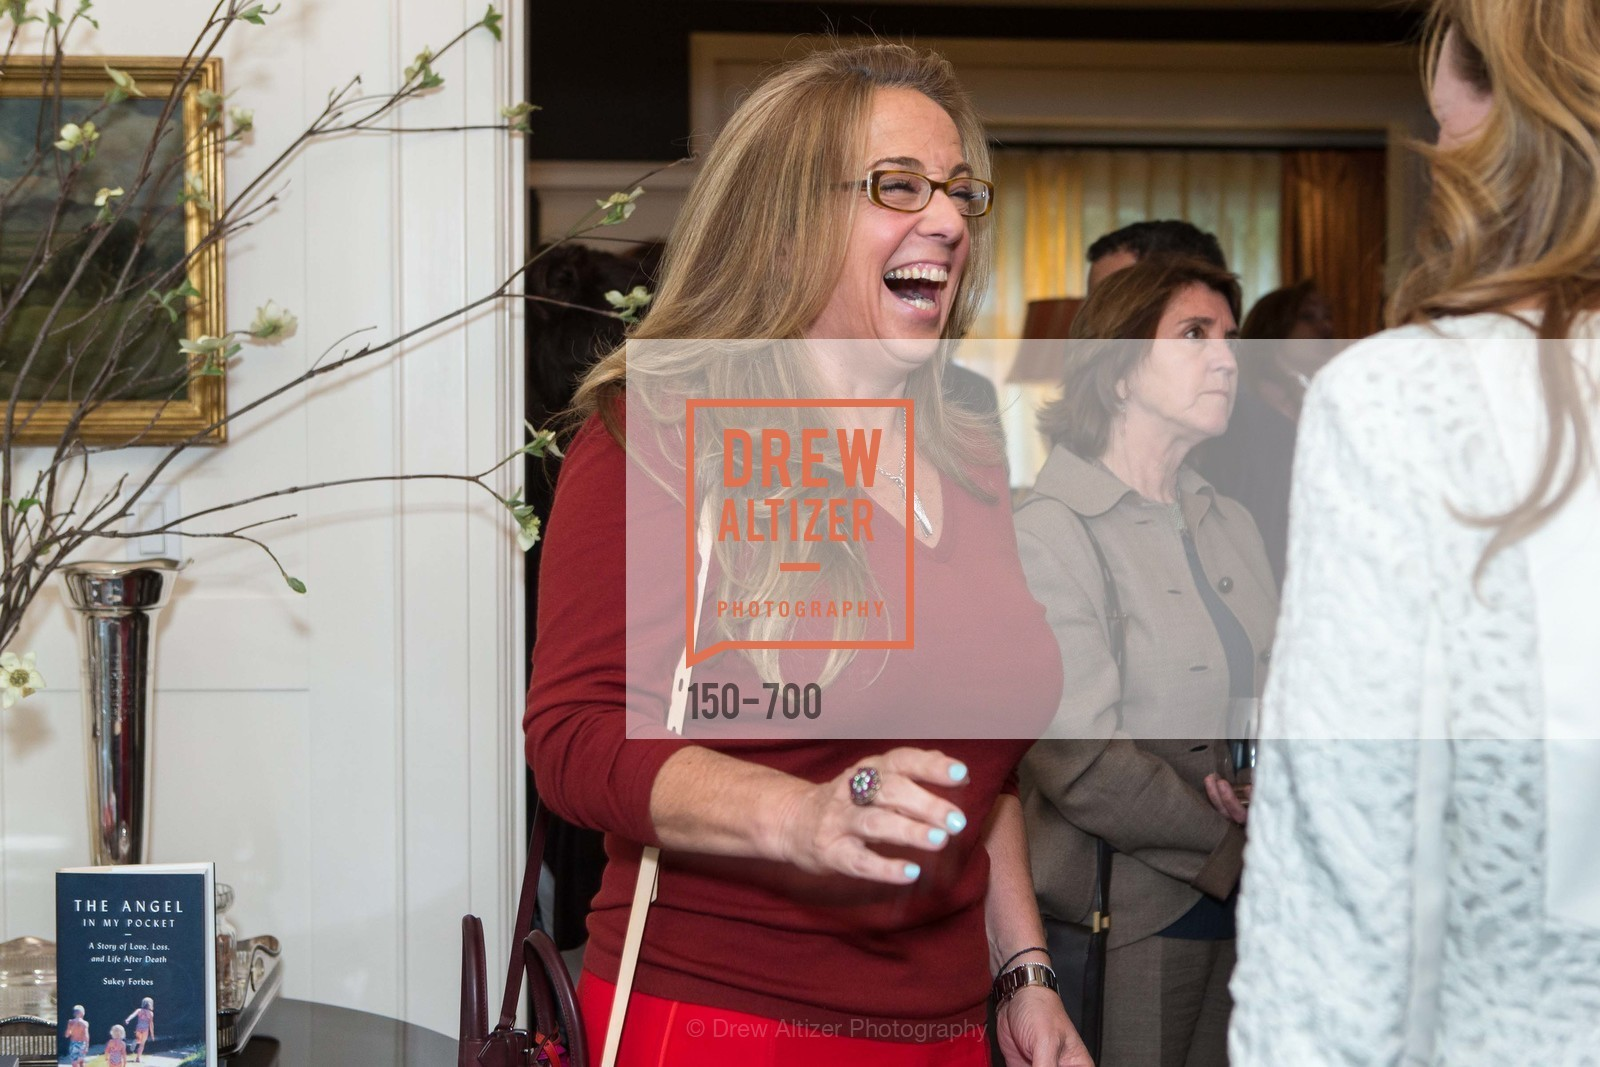 Extras, SUKEY FORBES' Book Signing, May 7th, 2015, Photo,Drew Altizer, Drew Altizer Photography, full-service agency, private events, San Francisco photographer, photographer california